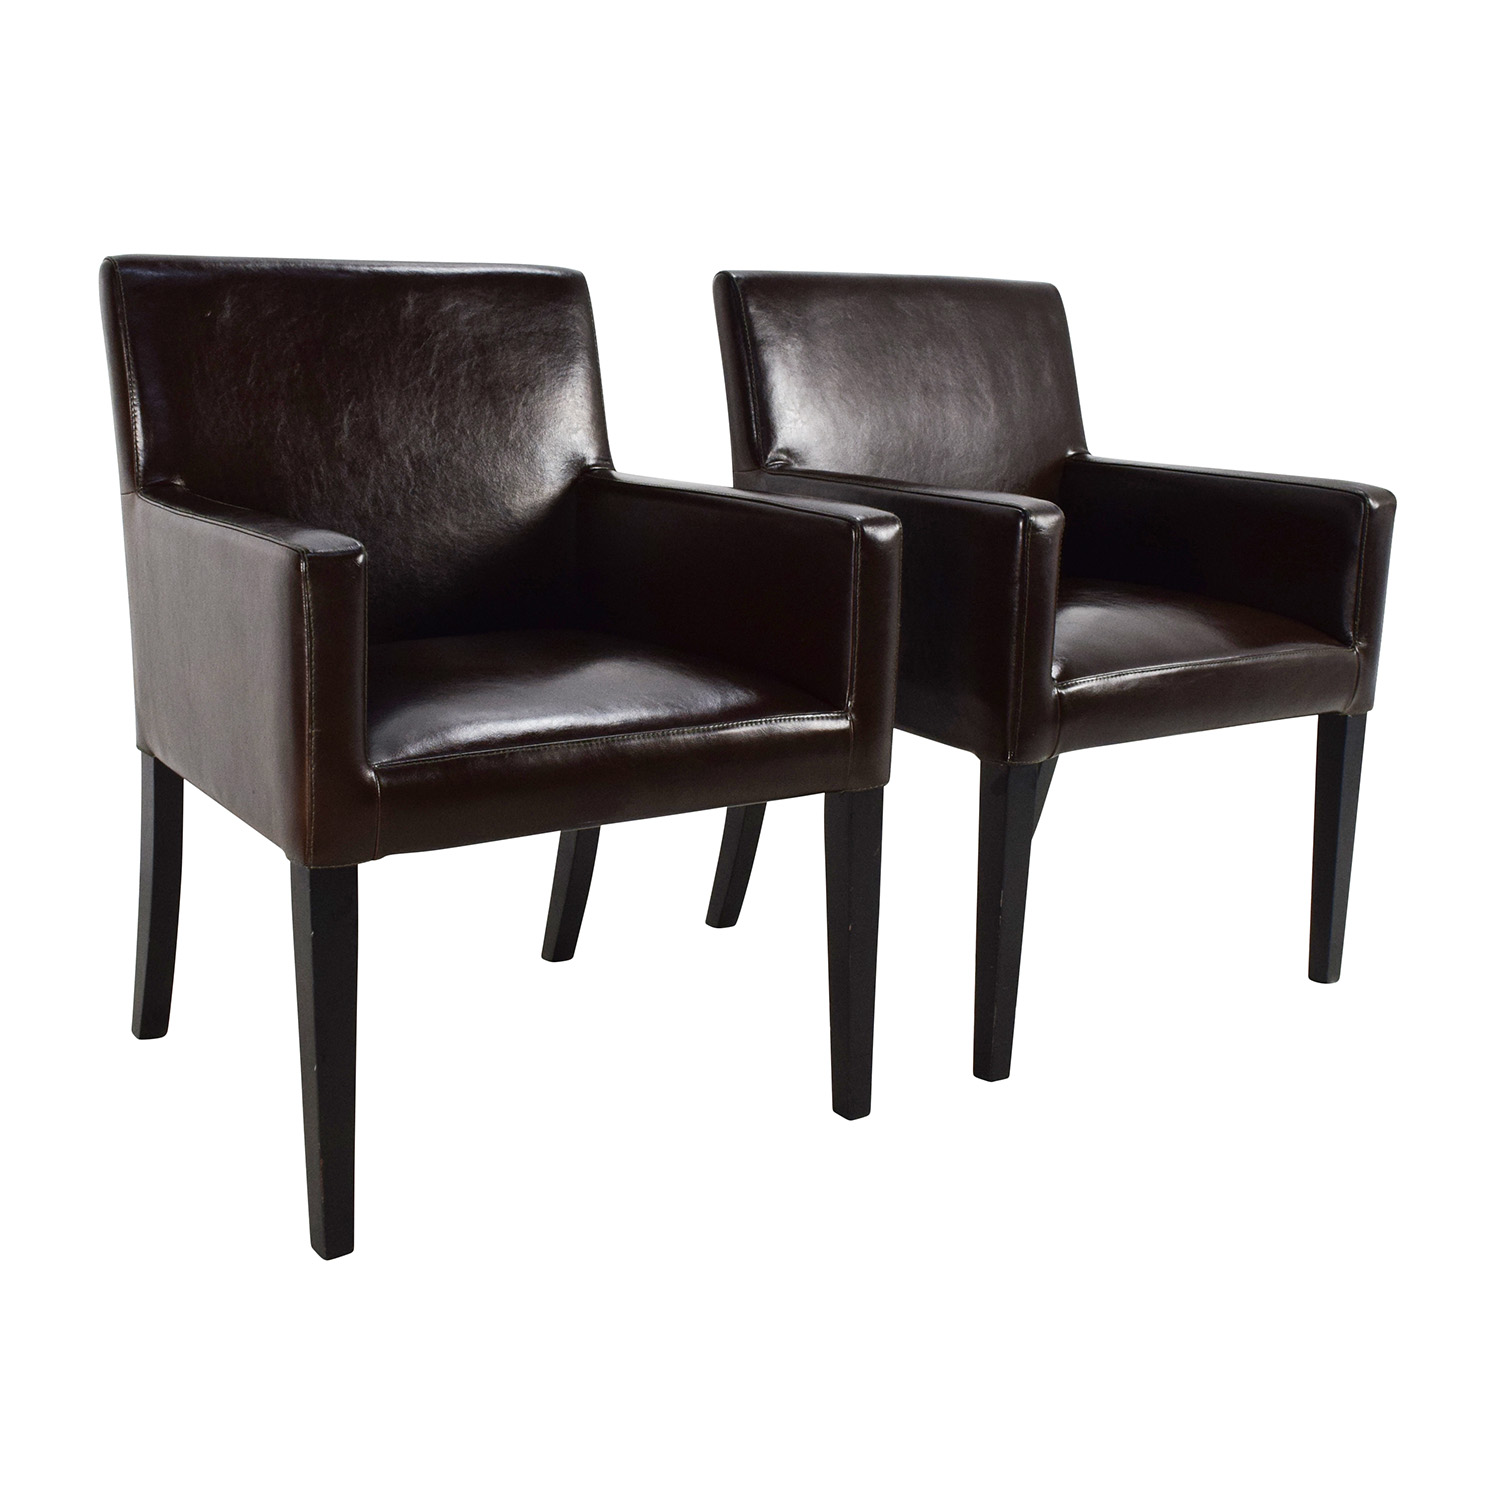 buy Black Leather Office Chairs online